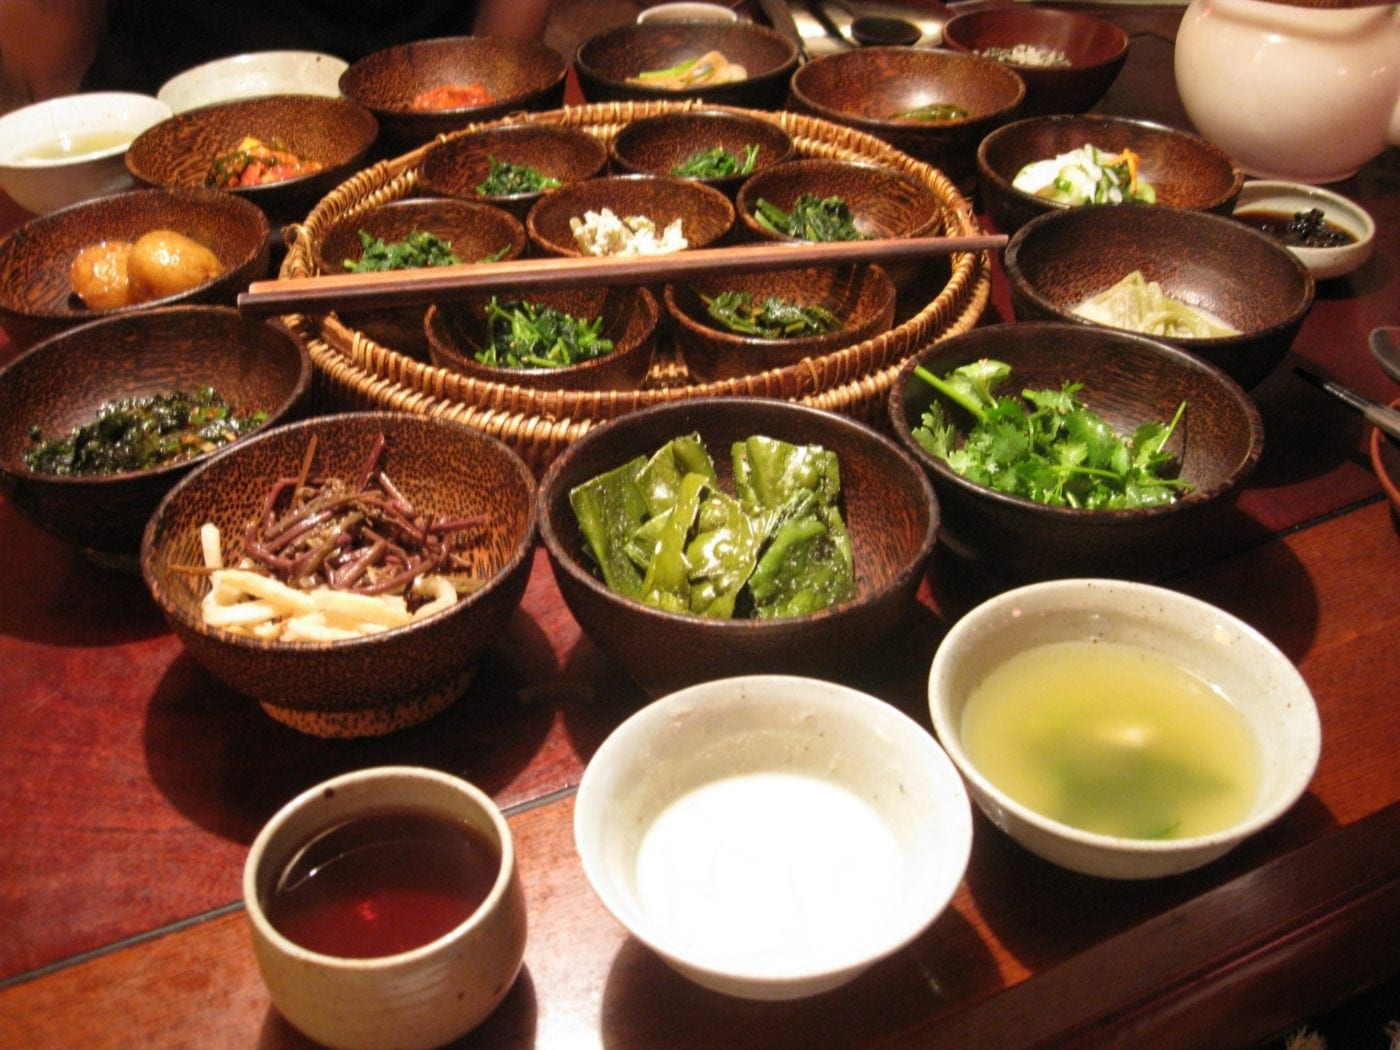 The Best Vegetarian and Vegan Restaurants in Seoul